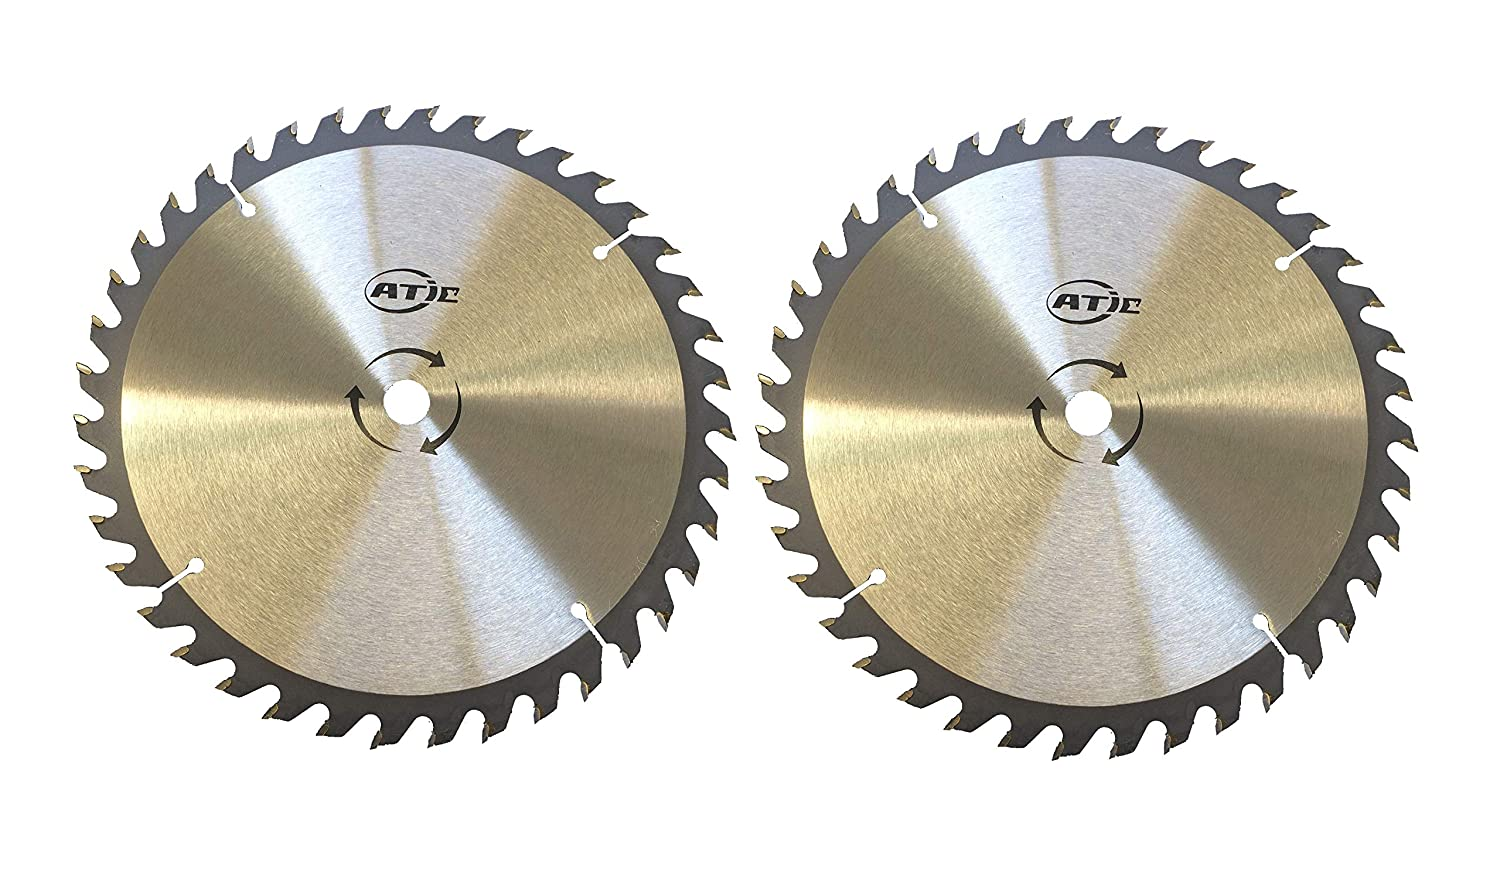 "2 PACK 9"" 40 Tooth Carbide Tip General Purpose Wood Cutting Circular Saw Blade with 5/8"" Arbor"